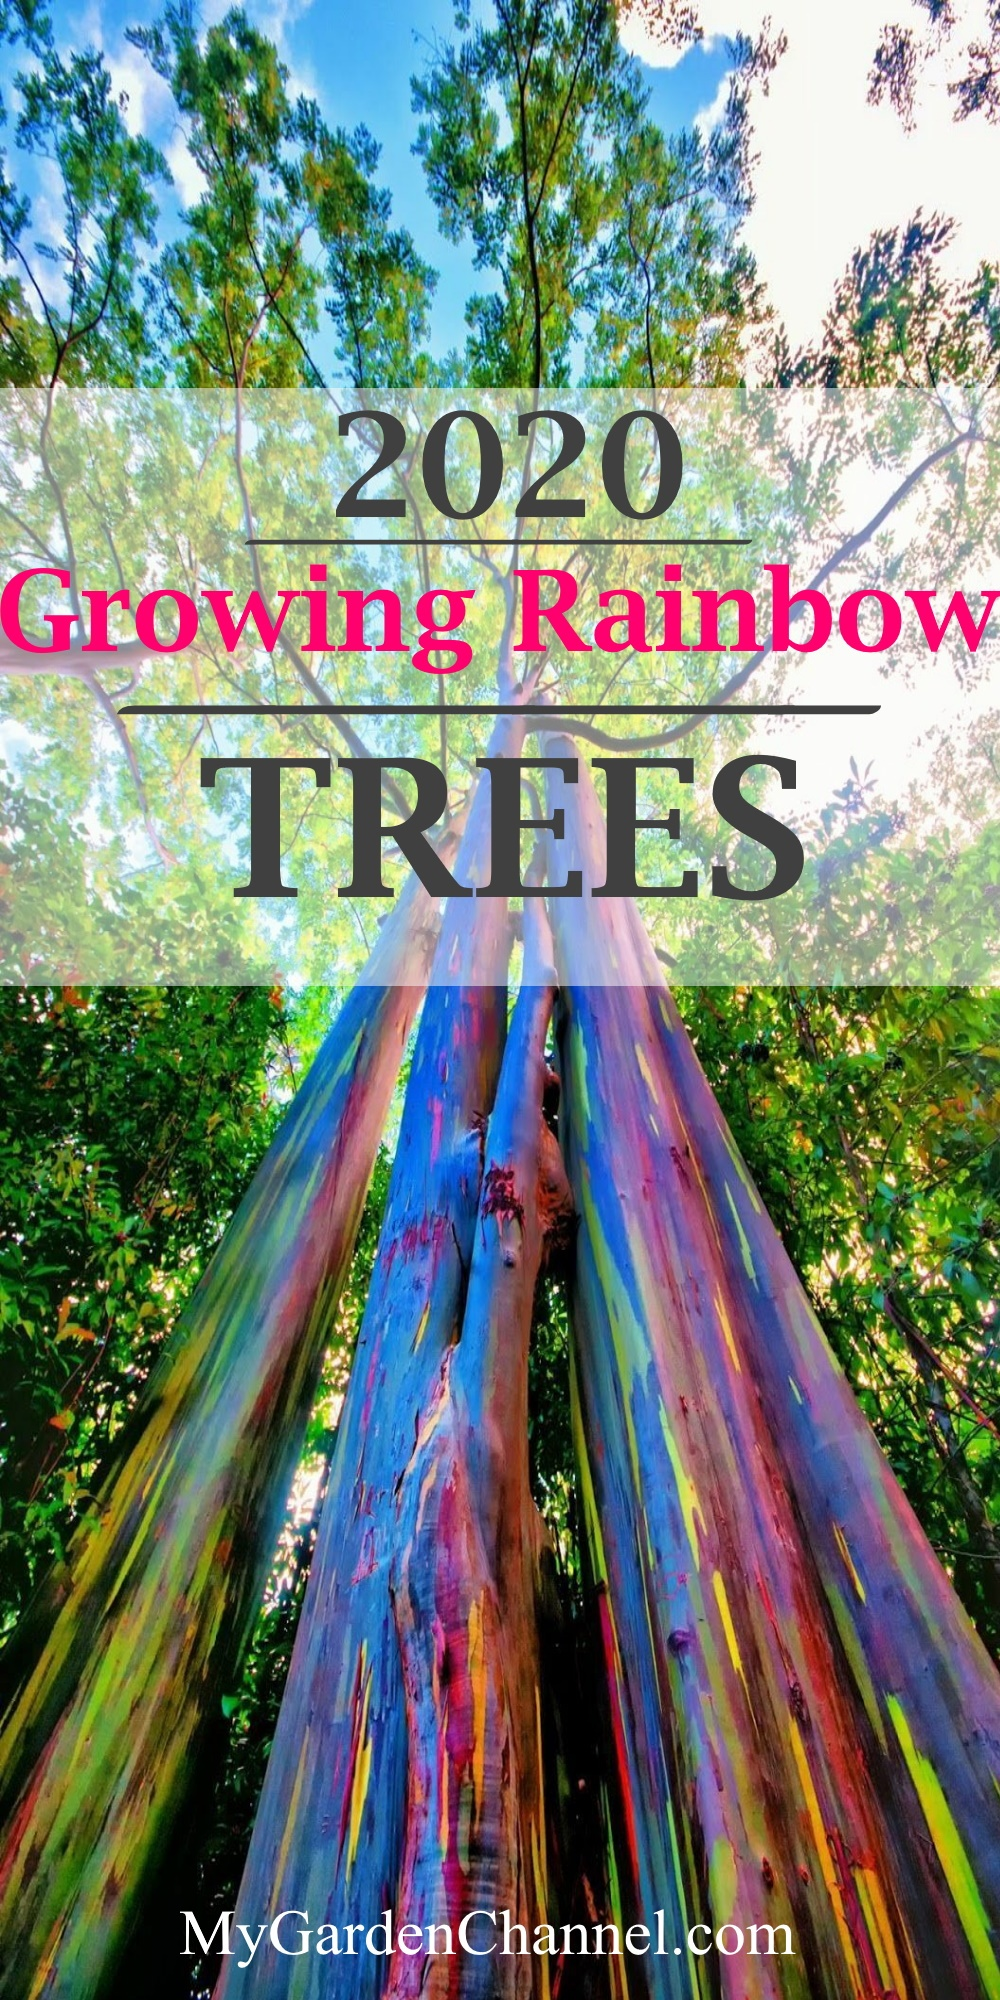 Growing Rainbow Trees is Amazing